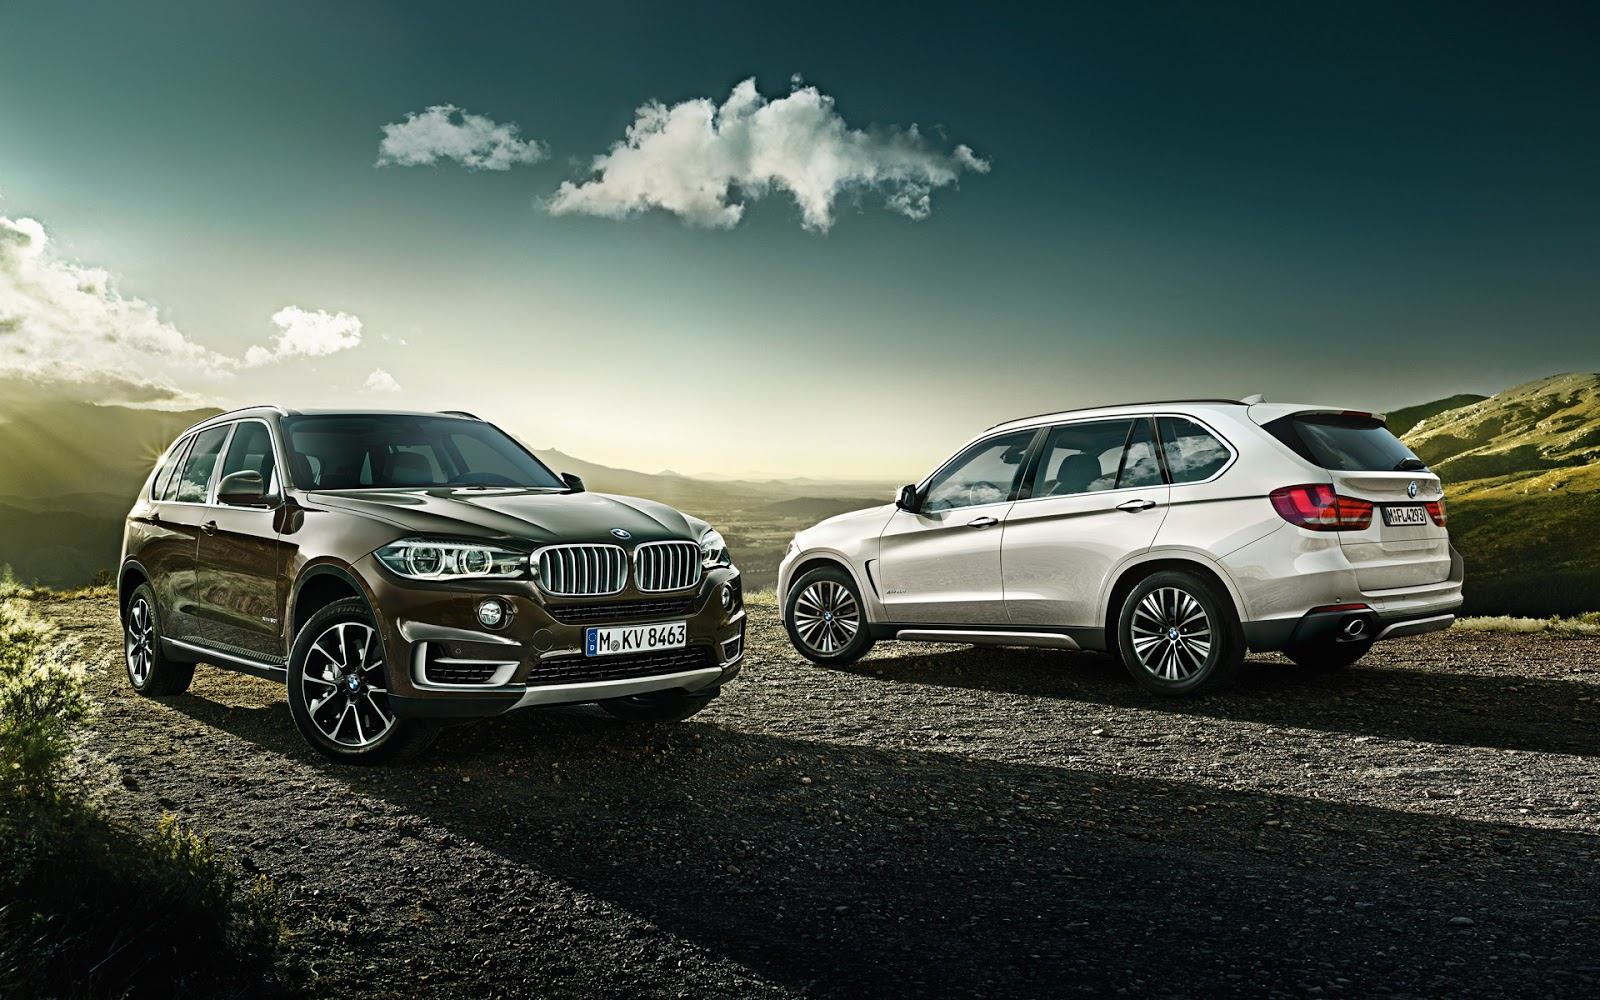 town country bmw mini markham blog f15 2014 bmw x5 wallpapers and video. Black Bedroom Furniture Sets. Home Design Ideas